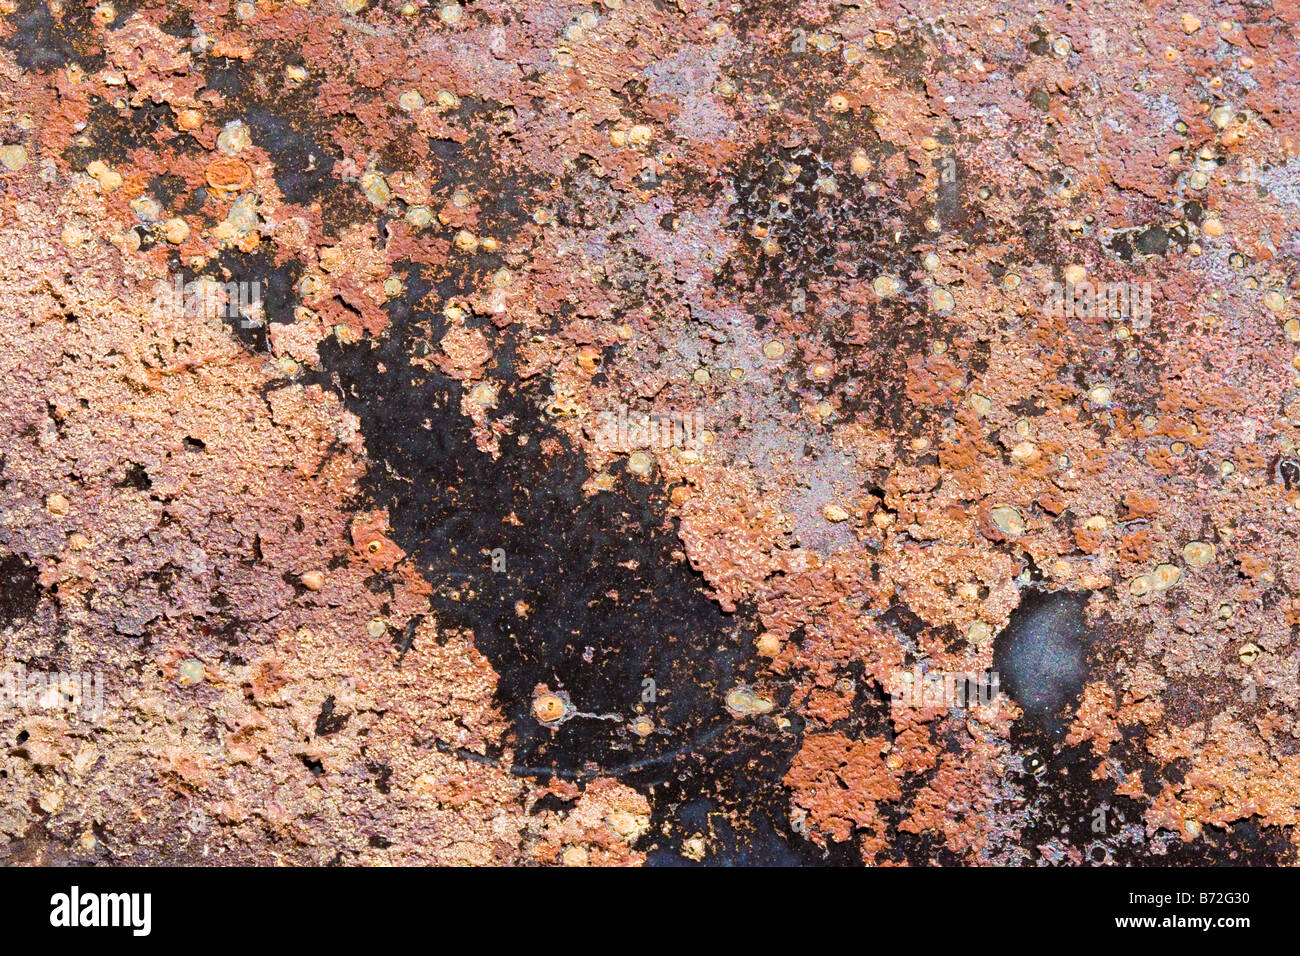 Background abstract texture of rusted metal in shades of orange and brown colors - Stock Image